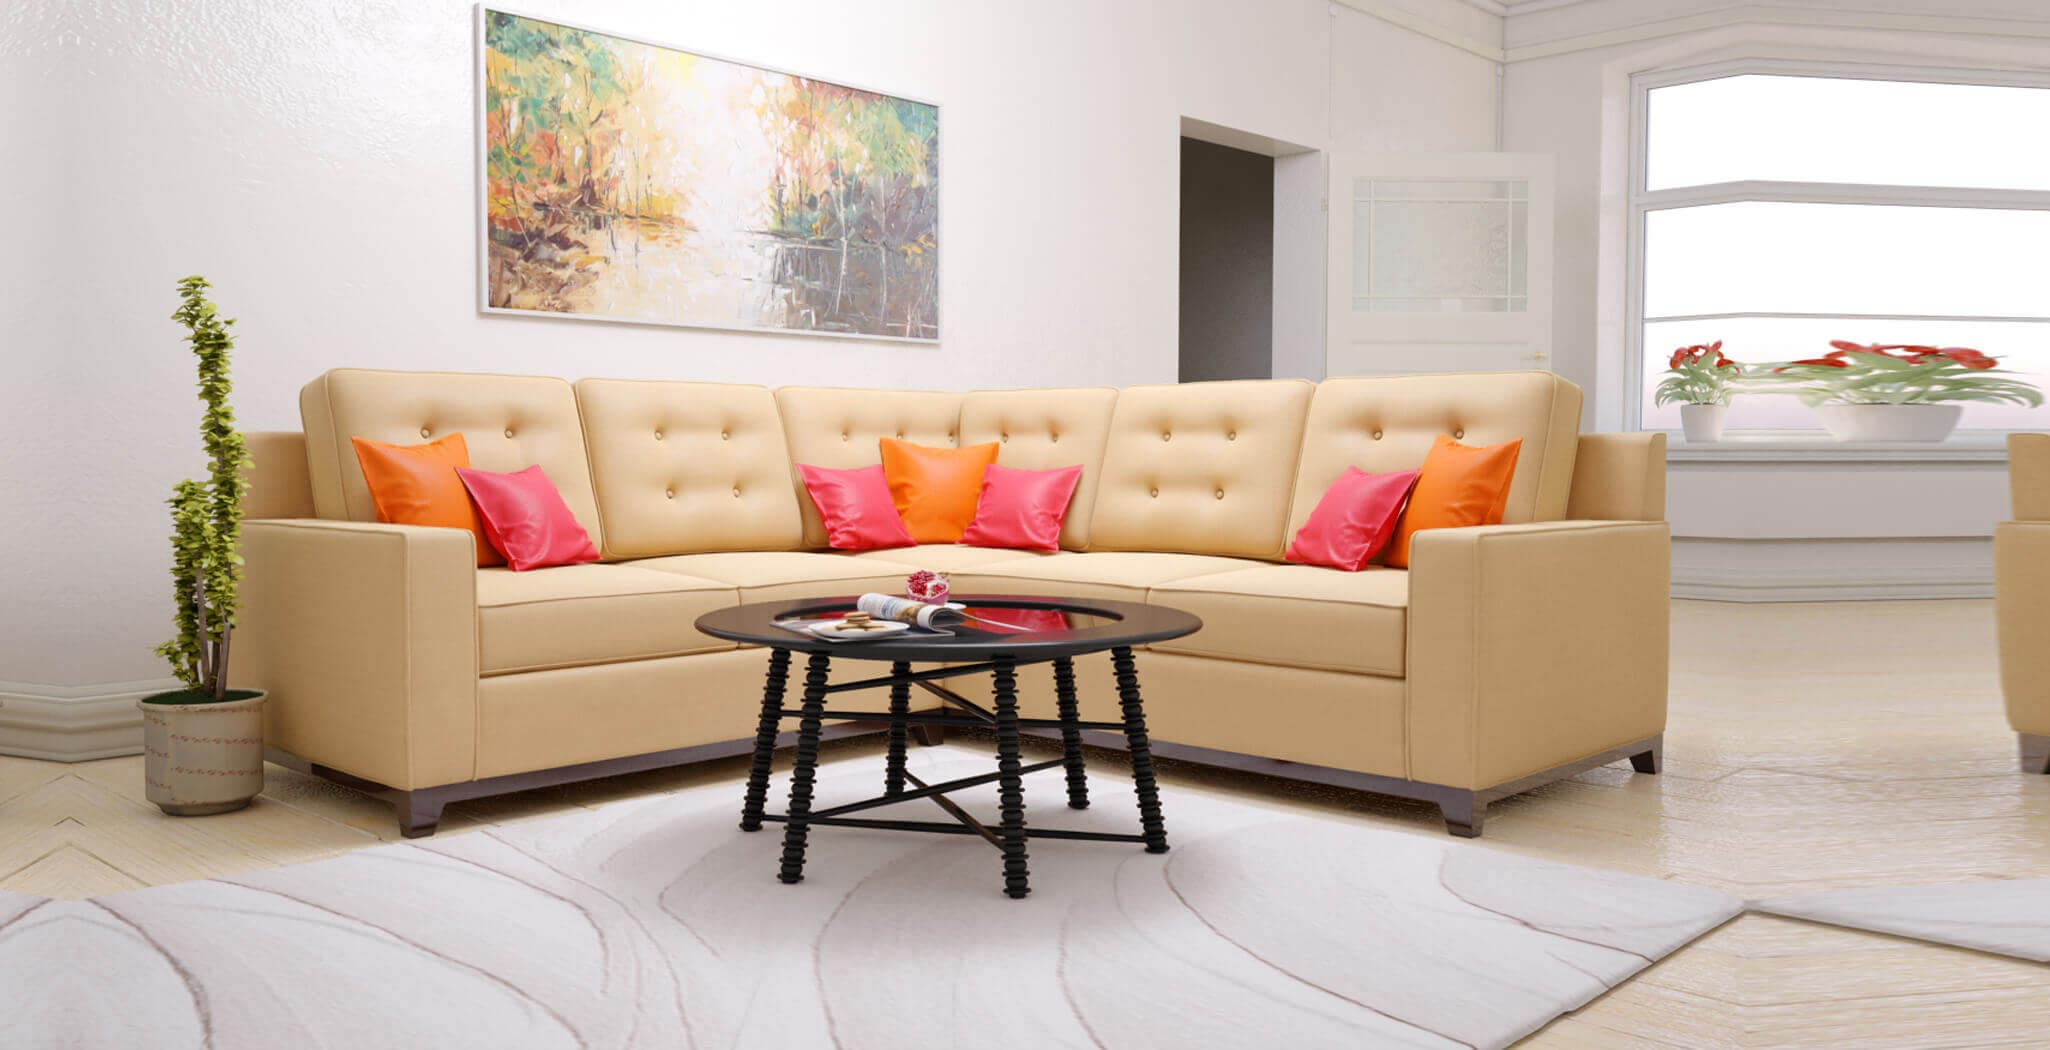 alexandria sectional furniture gallery 4